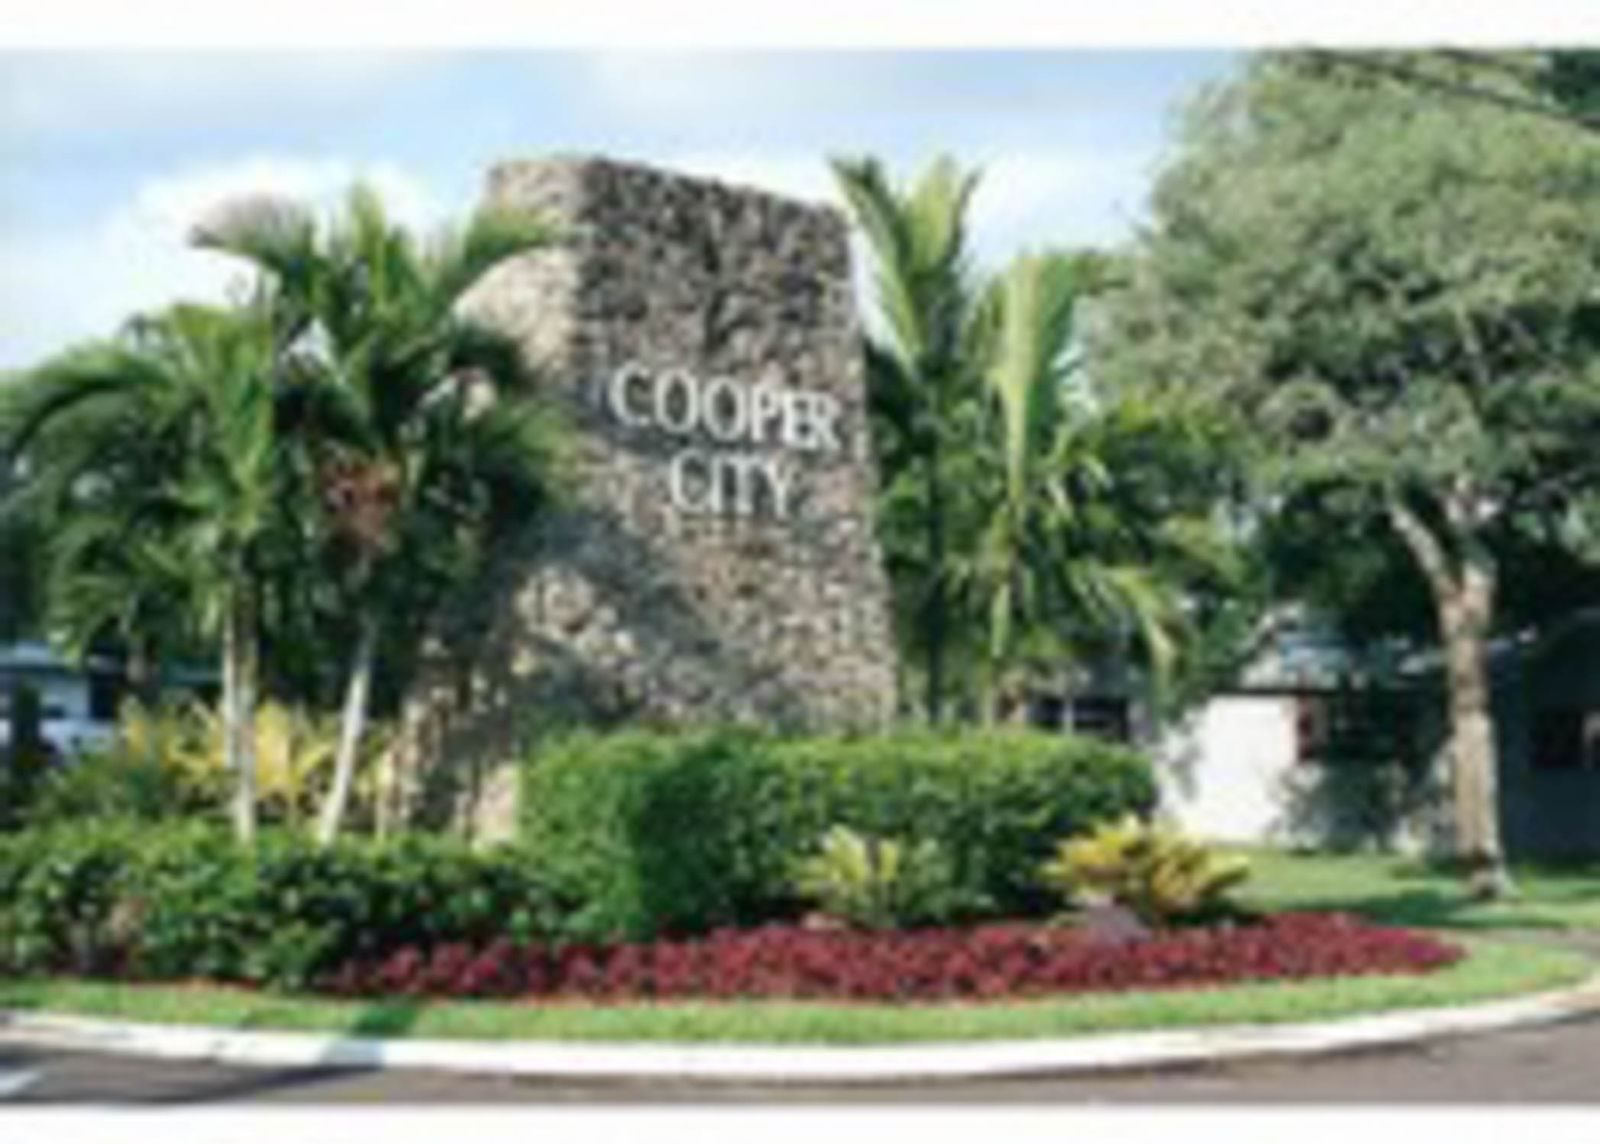 Cooper City criminal defense attorneys defend your rights when facing criminal charges in cooper city, florida